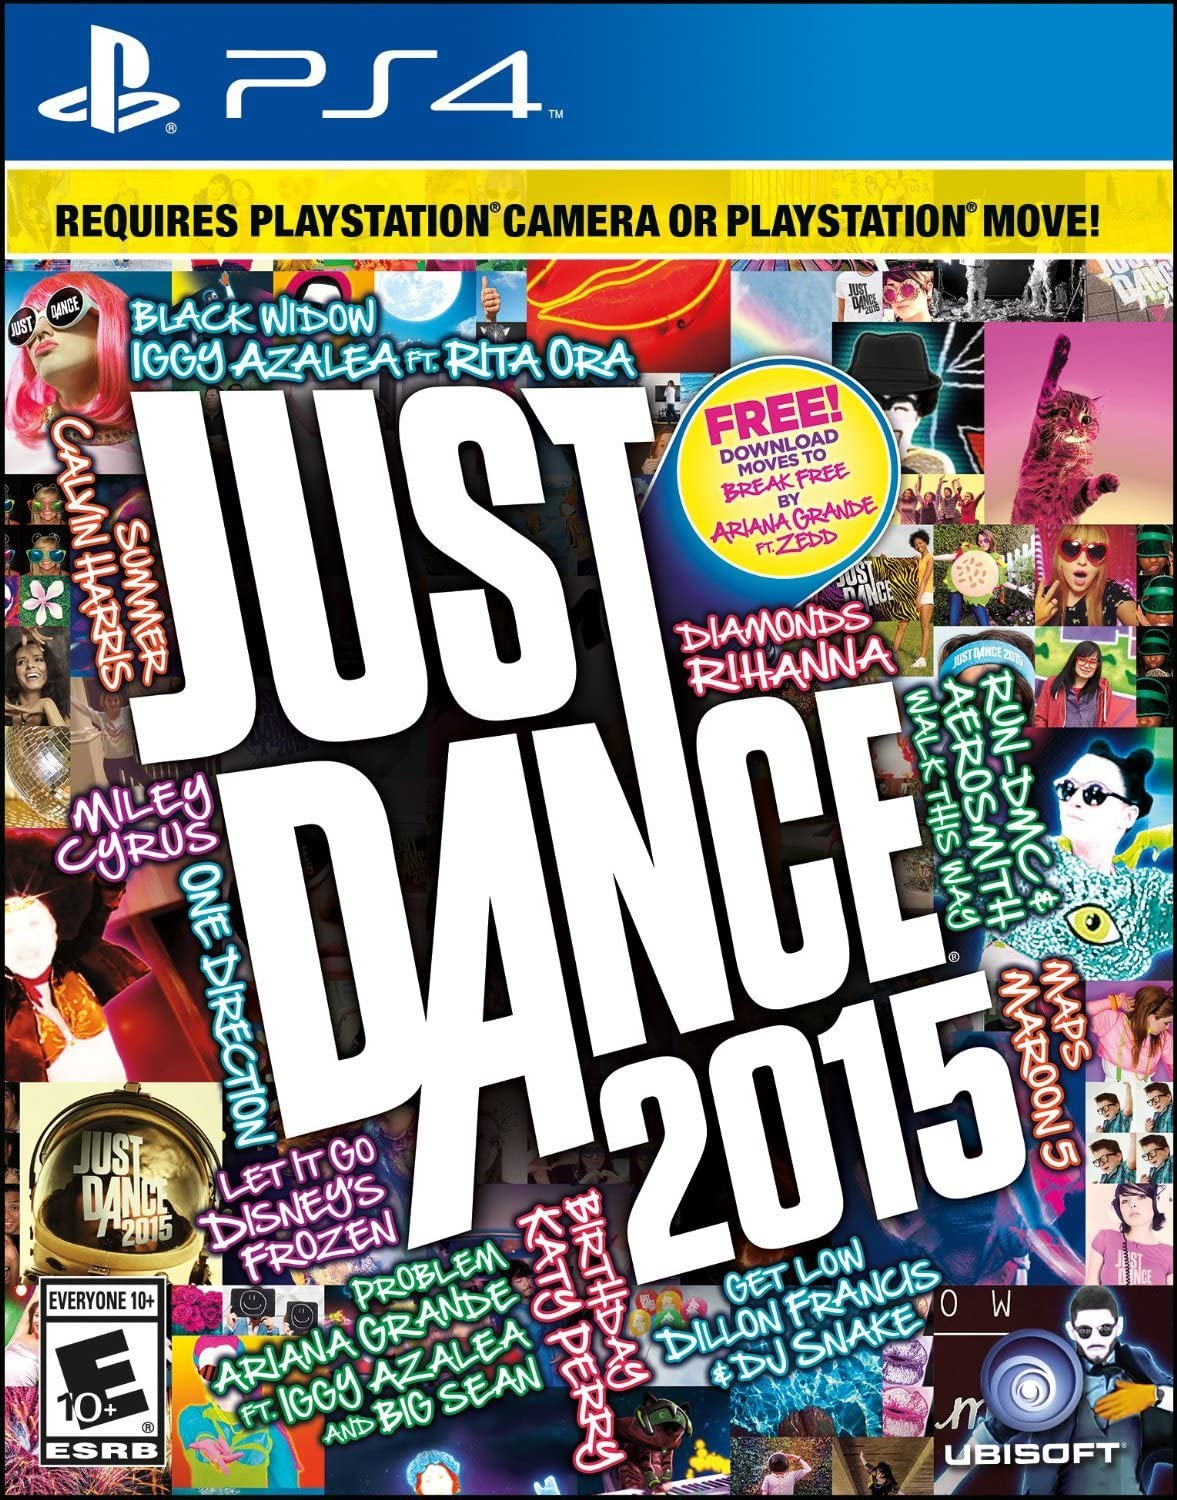 Ubisoft Just Dance 2015, PS4 - Juego (PS4, PlayStation 4, Dance ...